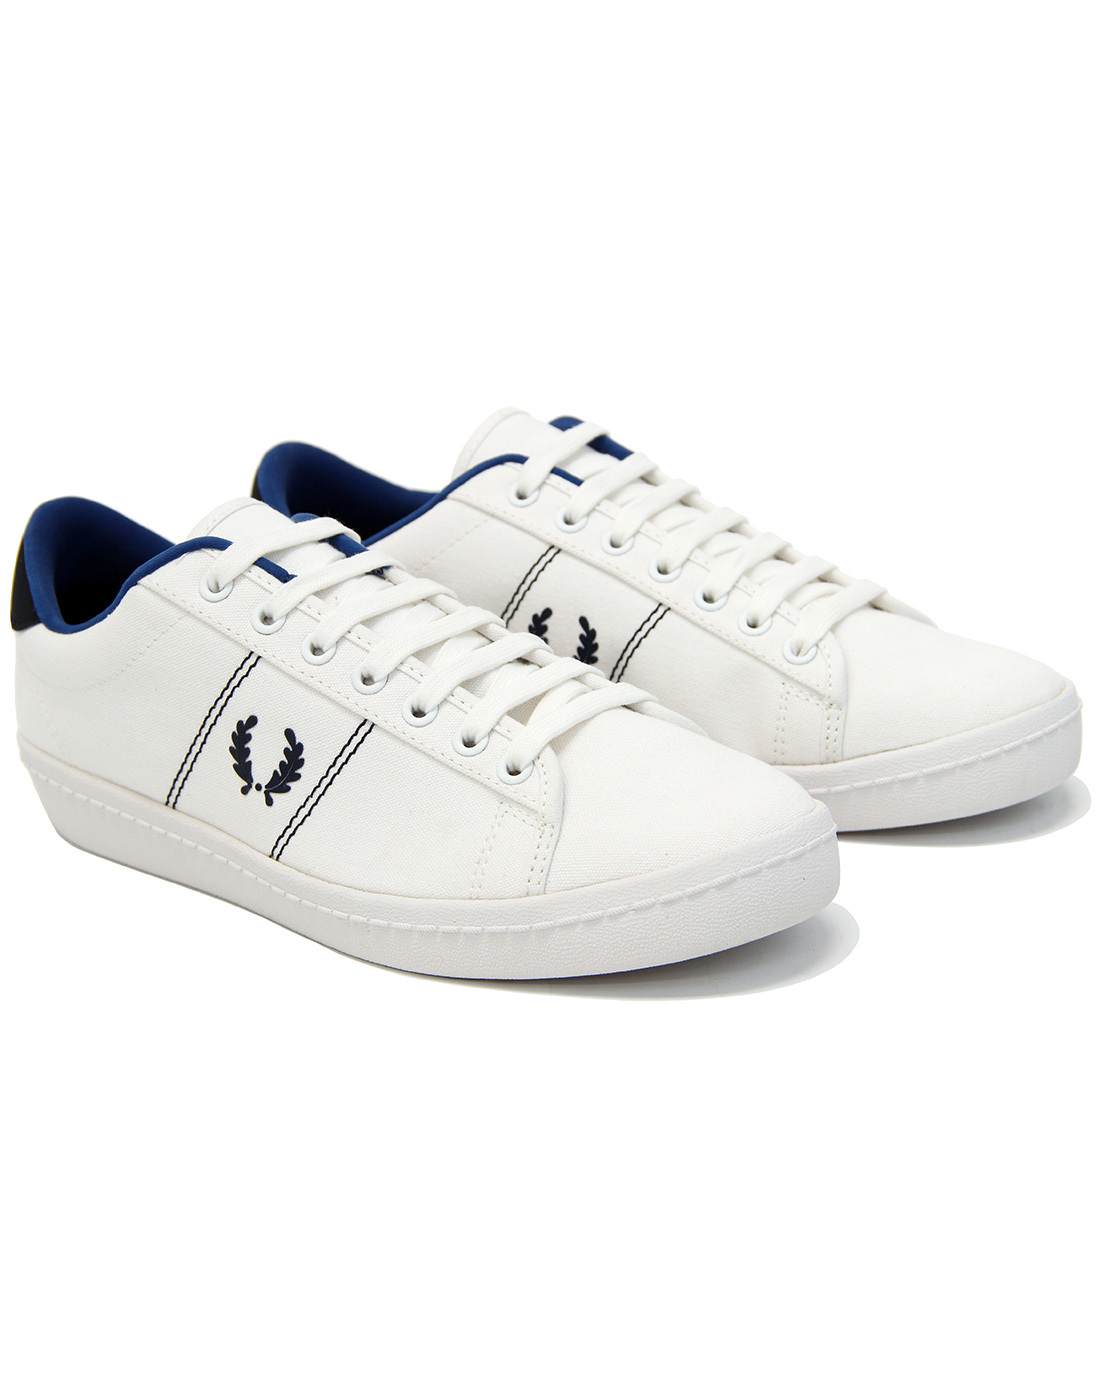 FRED PERRY Reissue B2 Men's Retro Tennis Trainers